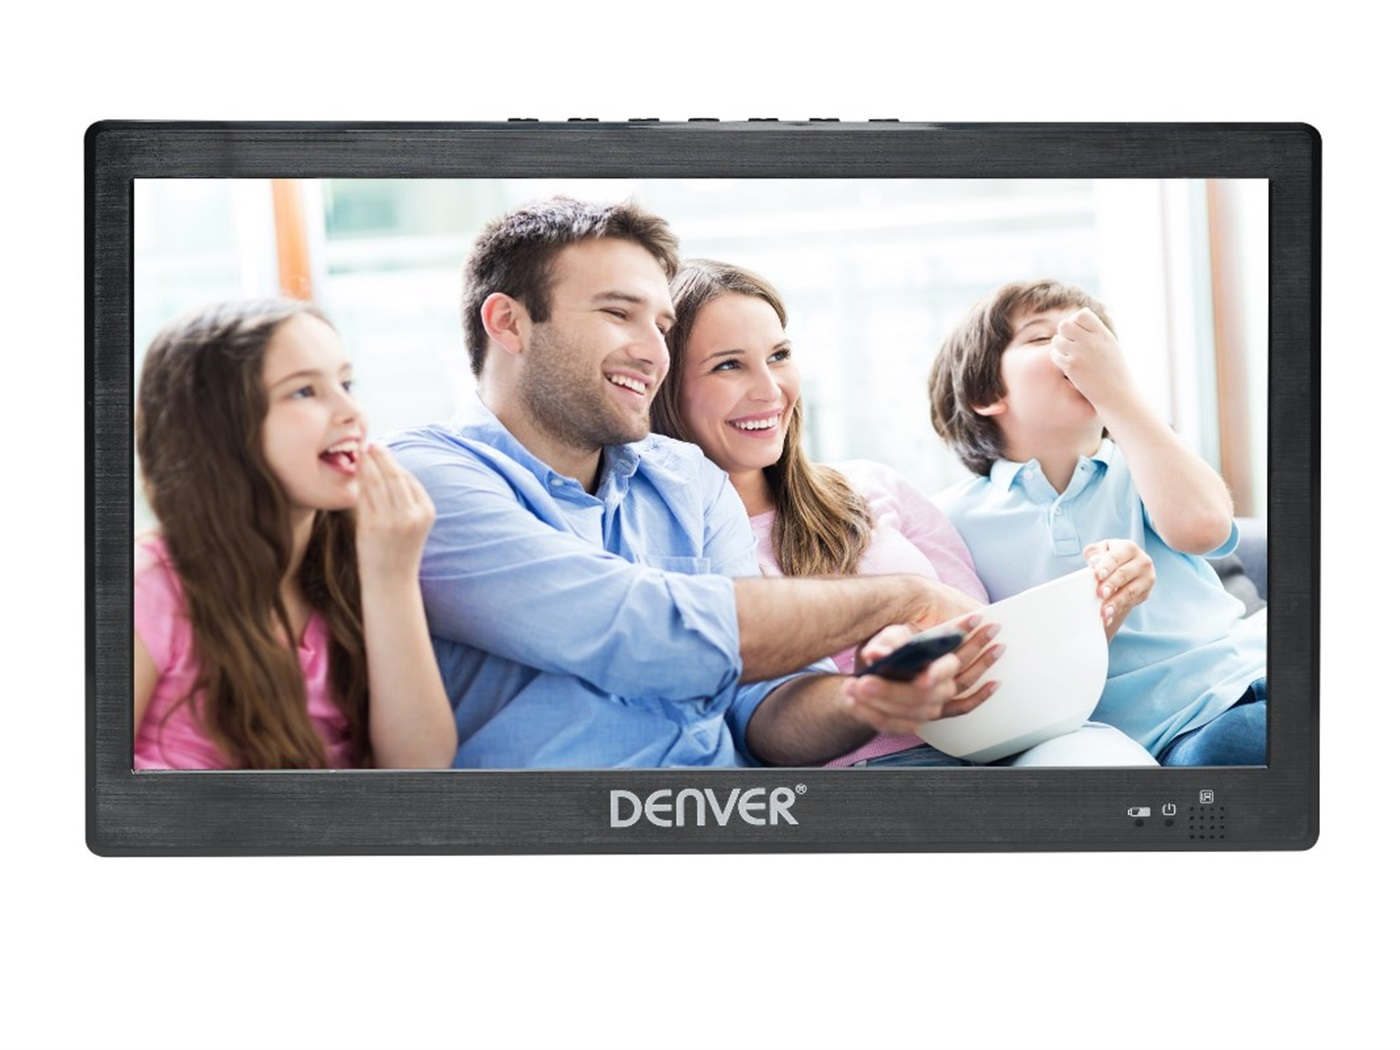 DENVER PRIJENOSNI TV DVBT2 LED-1031